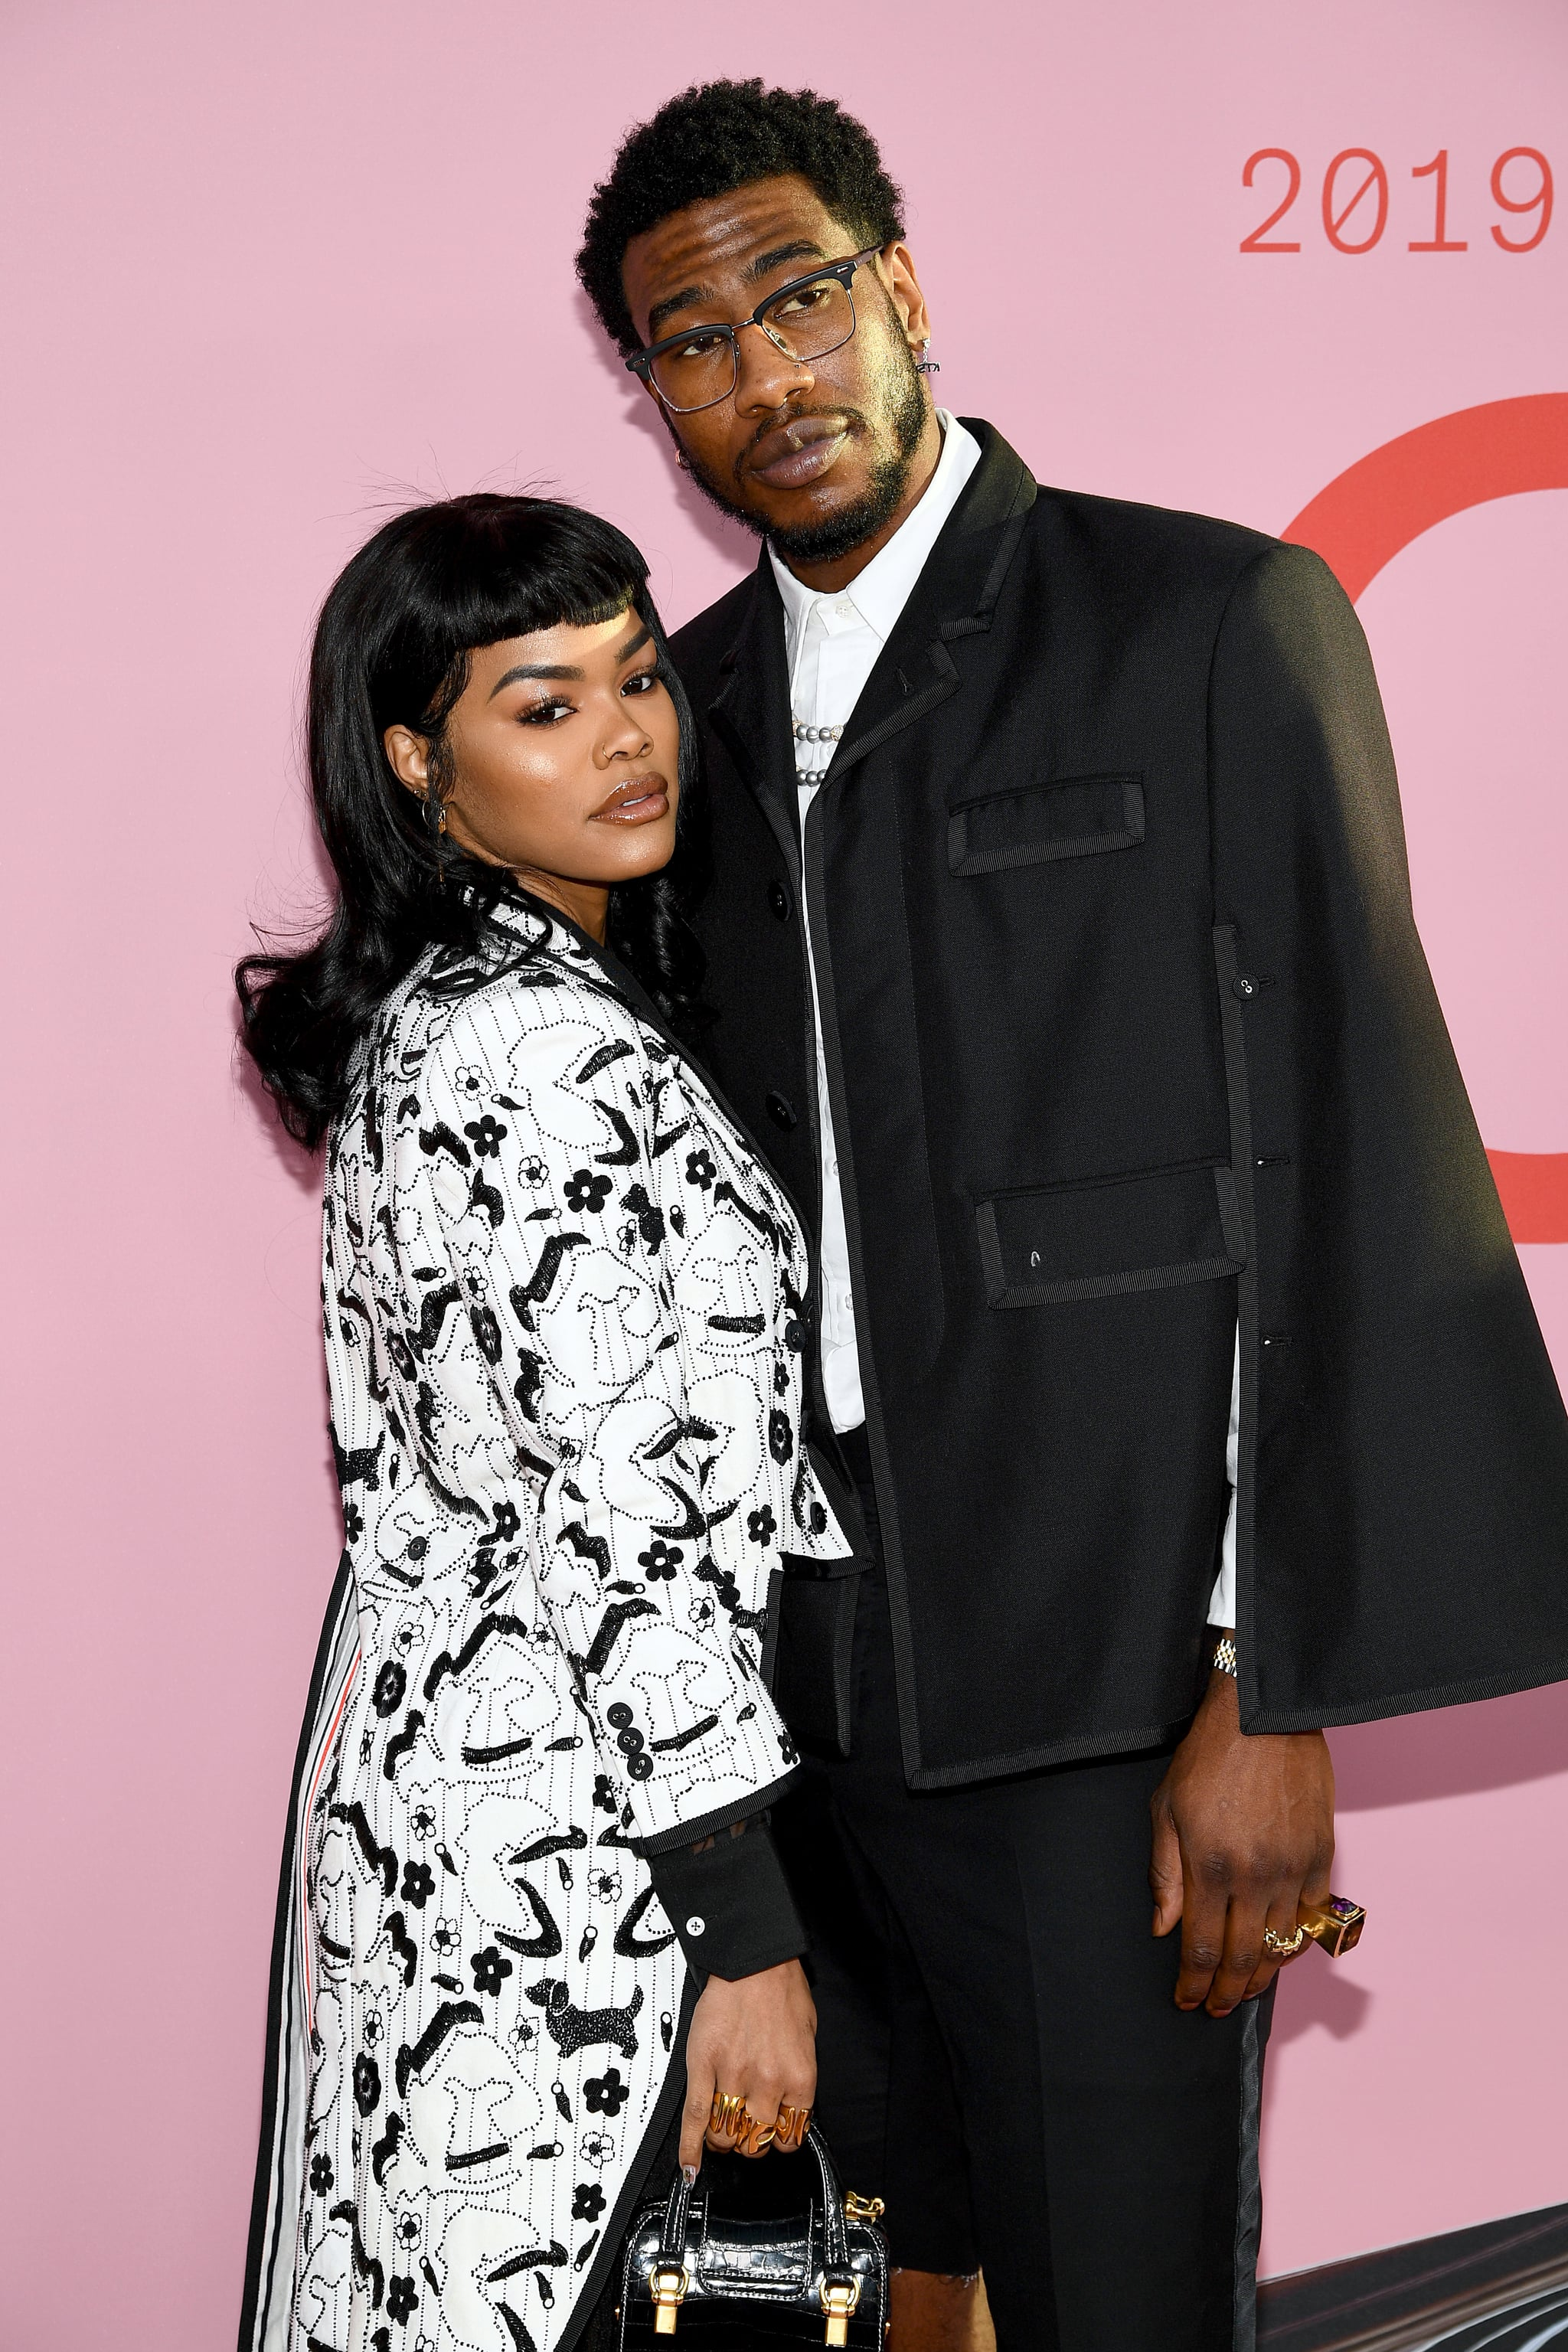 NEW YORK, NEW YORK - JUNE 03: Teyana Taylor and Iman Shumpert attend the CFDA Fashion Awards at the Brooklyn Museum of Art on June 03, 2019 in New York City. (Photo by Dimitrios Kambouris/Getty Images)